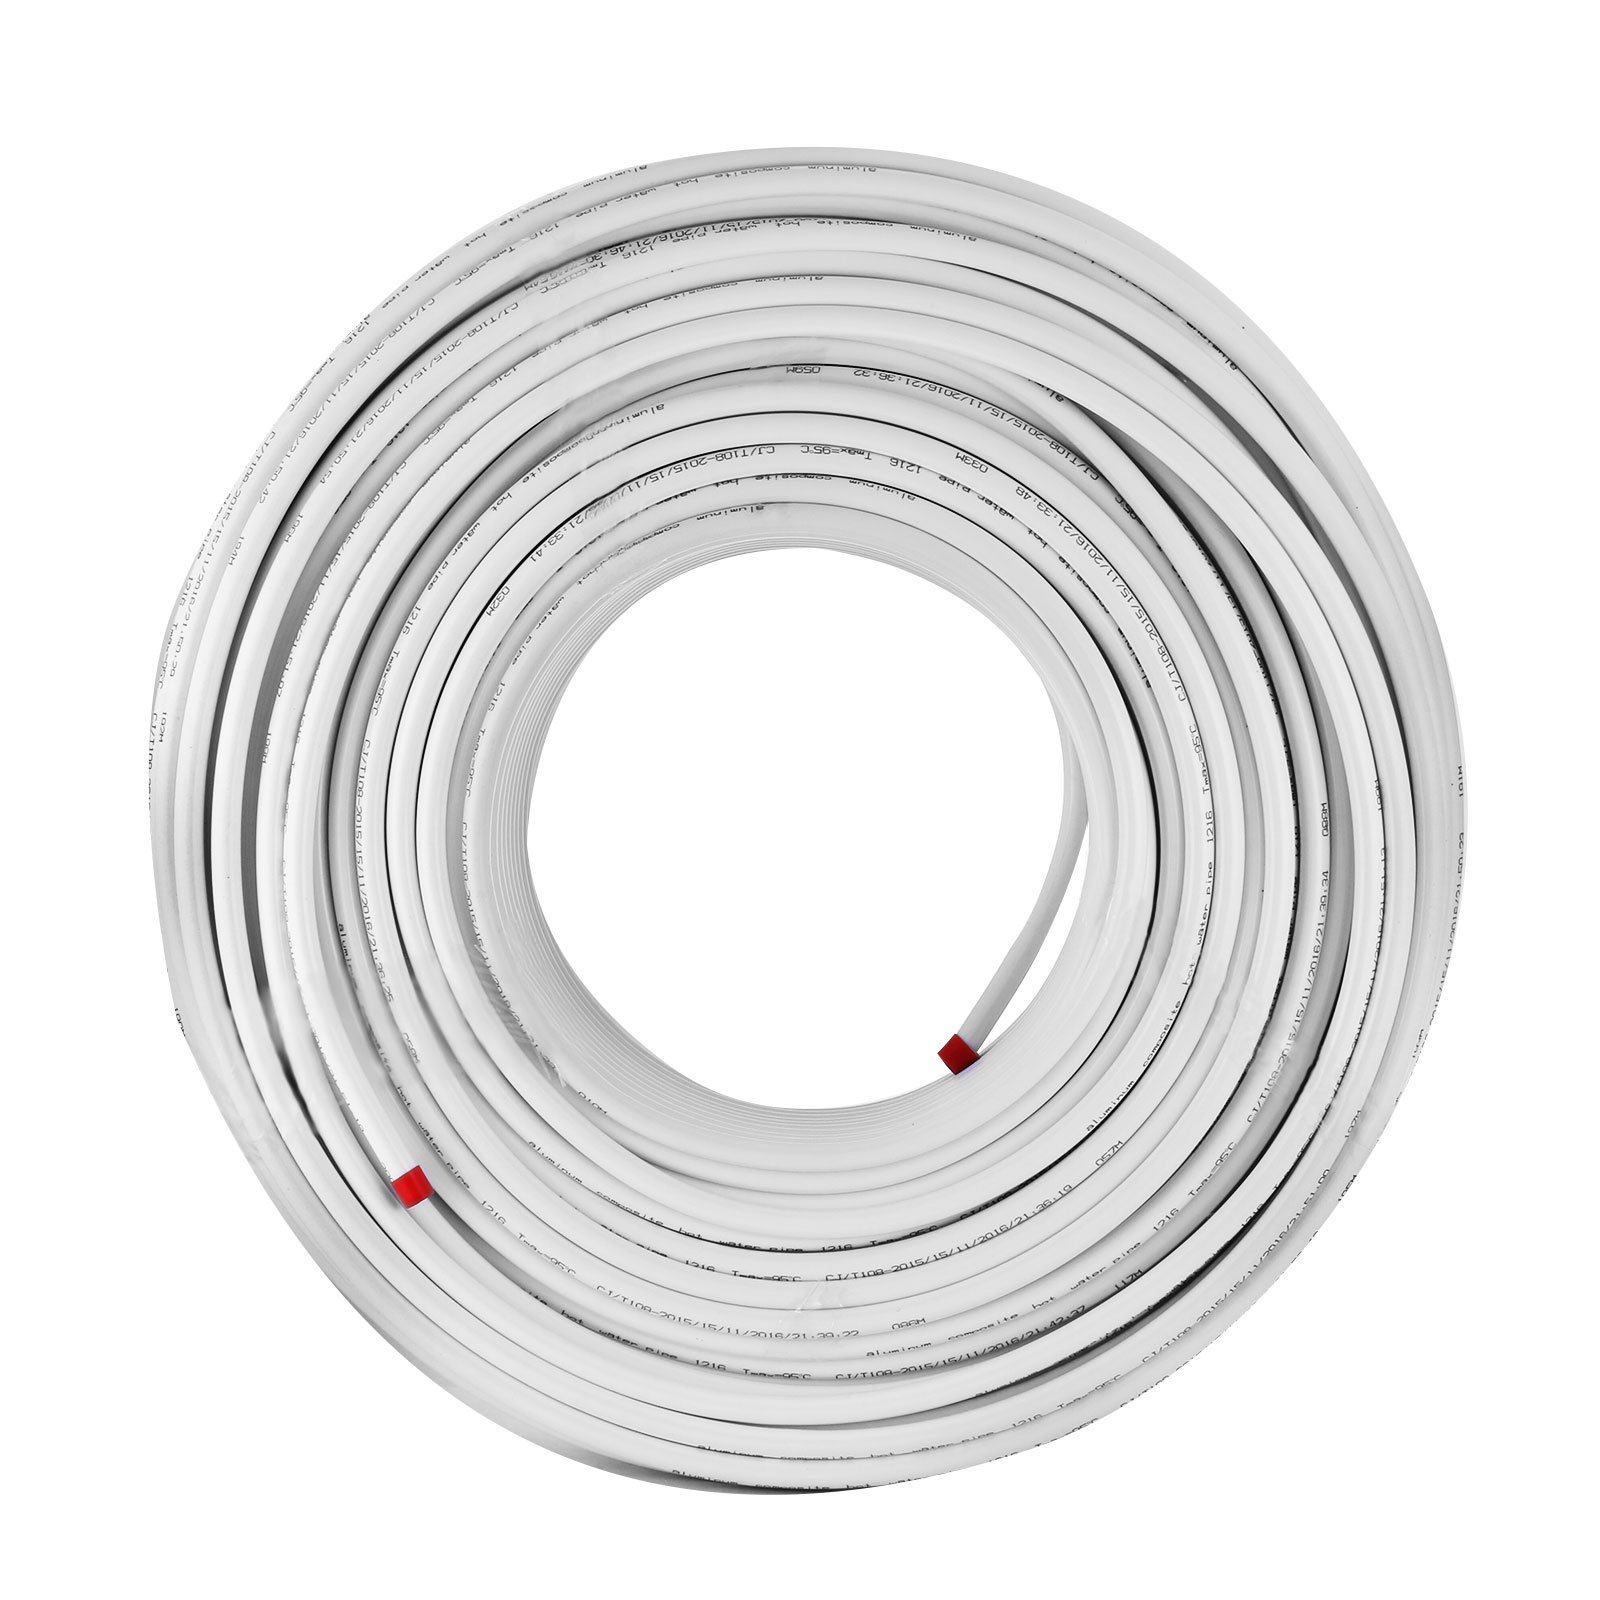 Mophorn PEX AL PEX Tubing 1/2 Inch Roll of 656 Ft 200 M Radiant Heat Tubing Nontoxic for Heating and Plumbing Hot and Cold Water Piping Radiant Floor PEX Al Tubing White by Mophorn (Image #3)